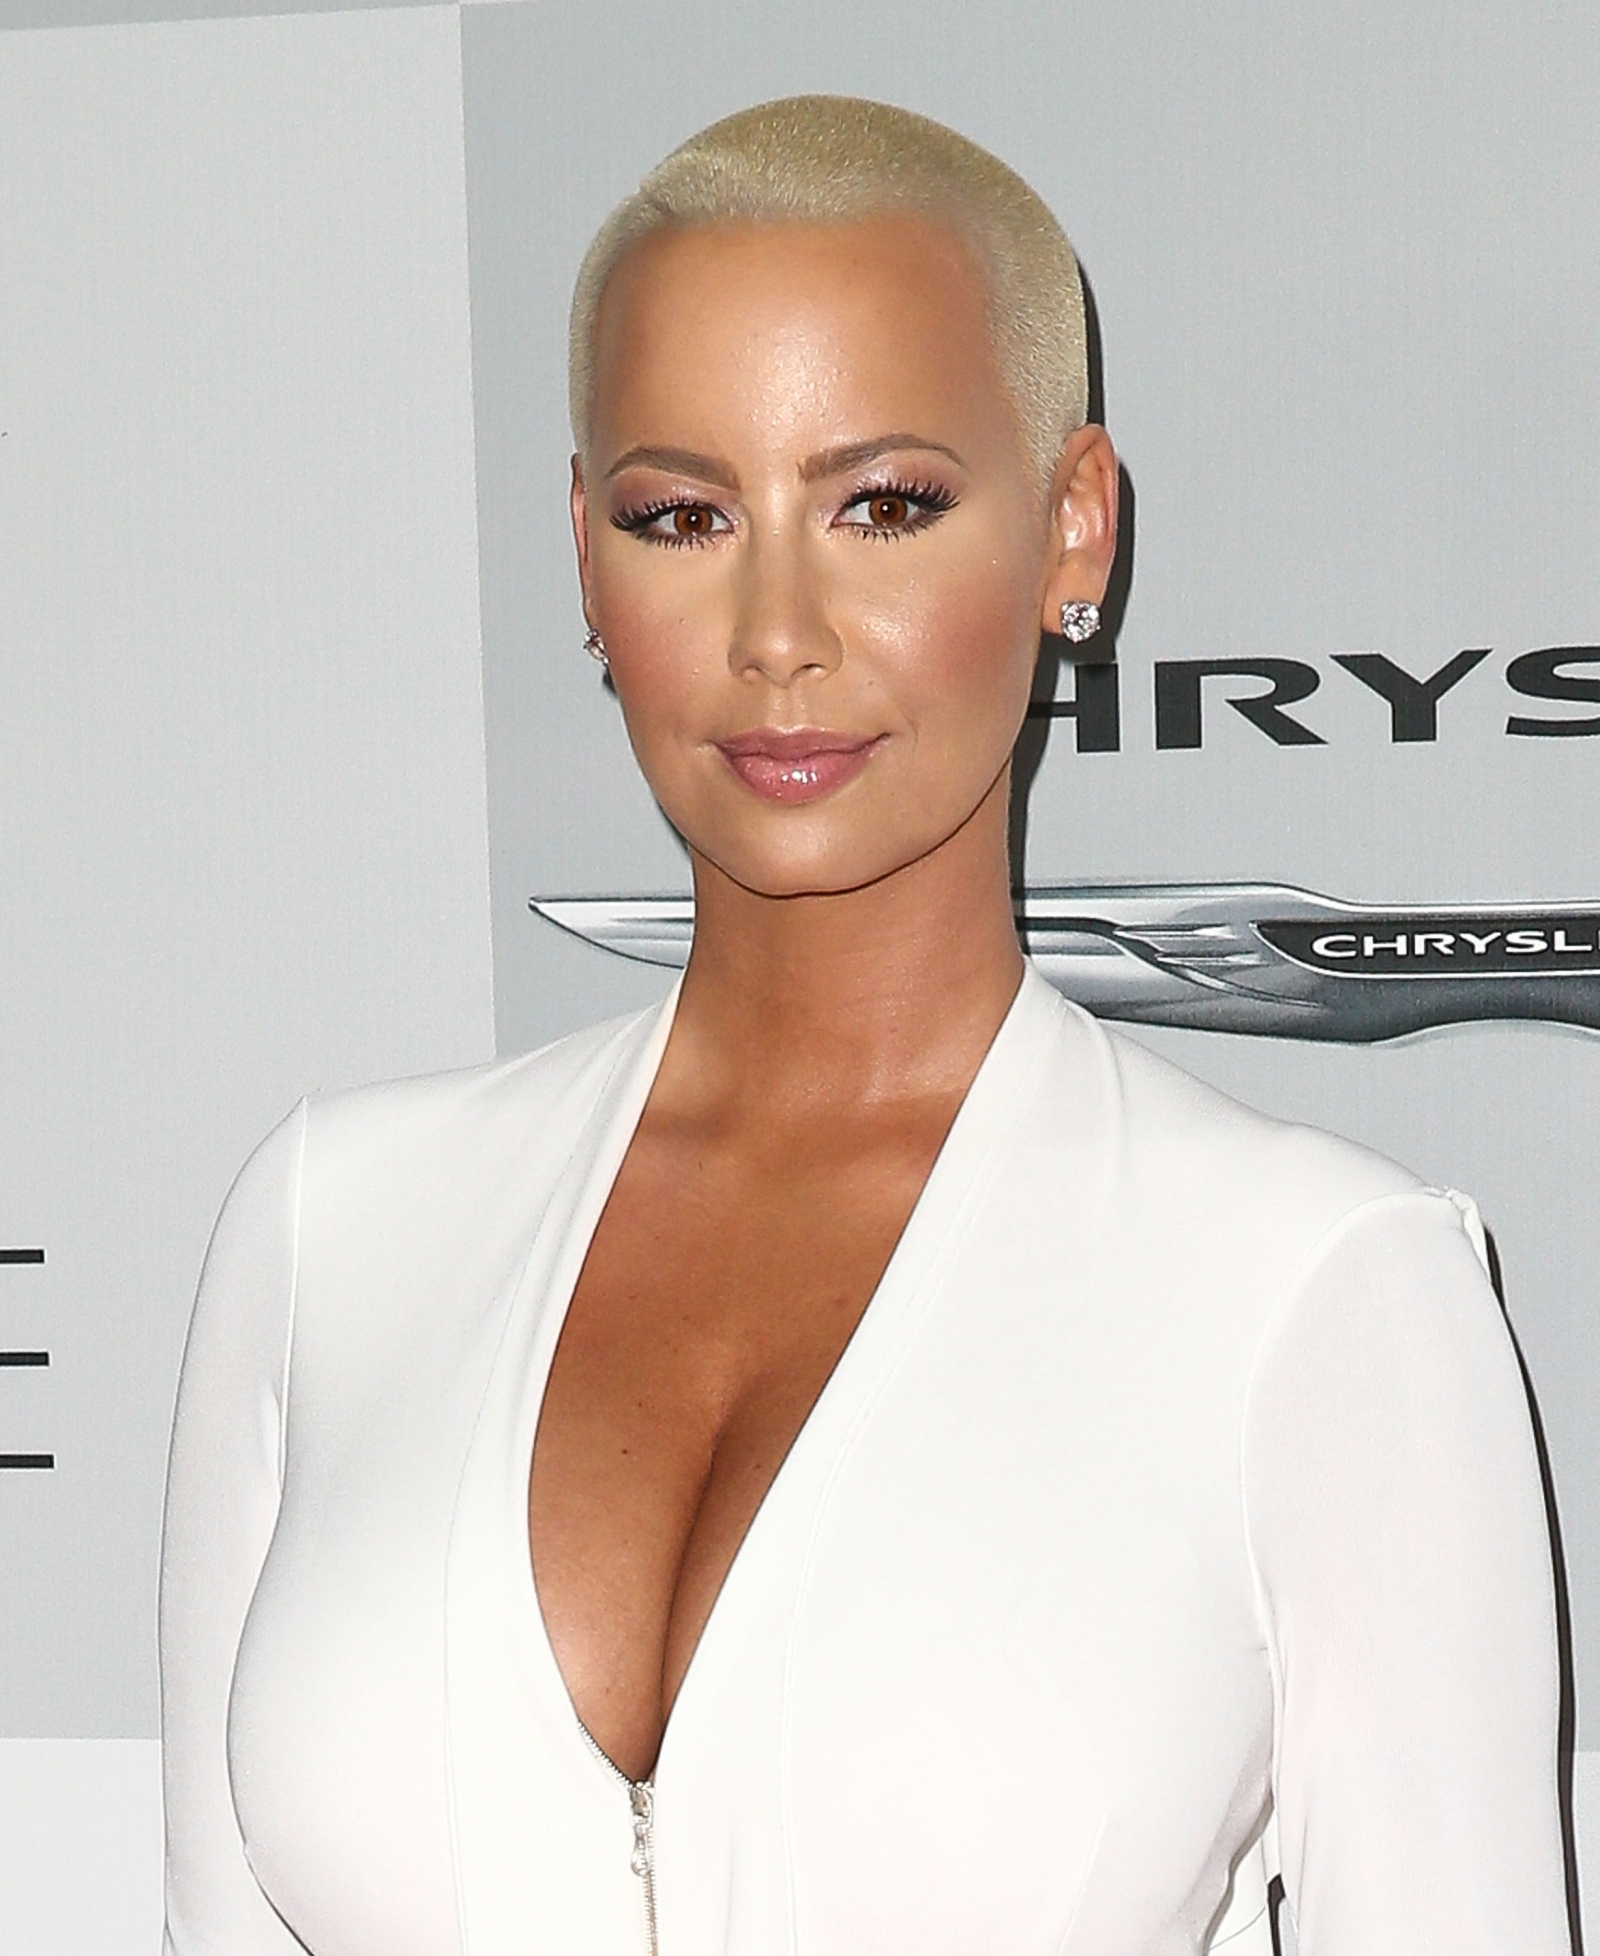 Amber Rose naked (89 photos), pictures Feet, Instagram, braless 2019